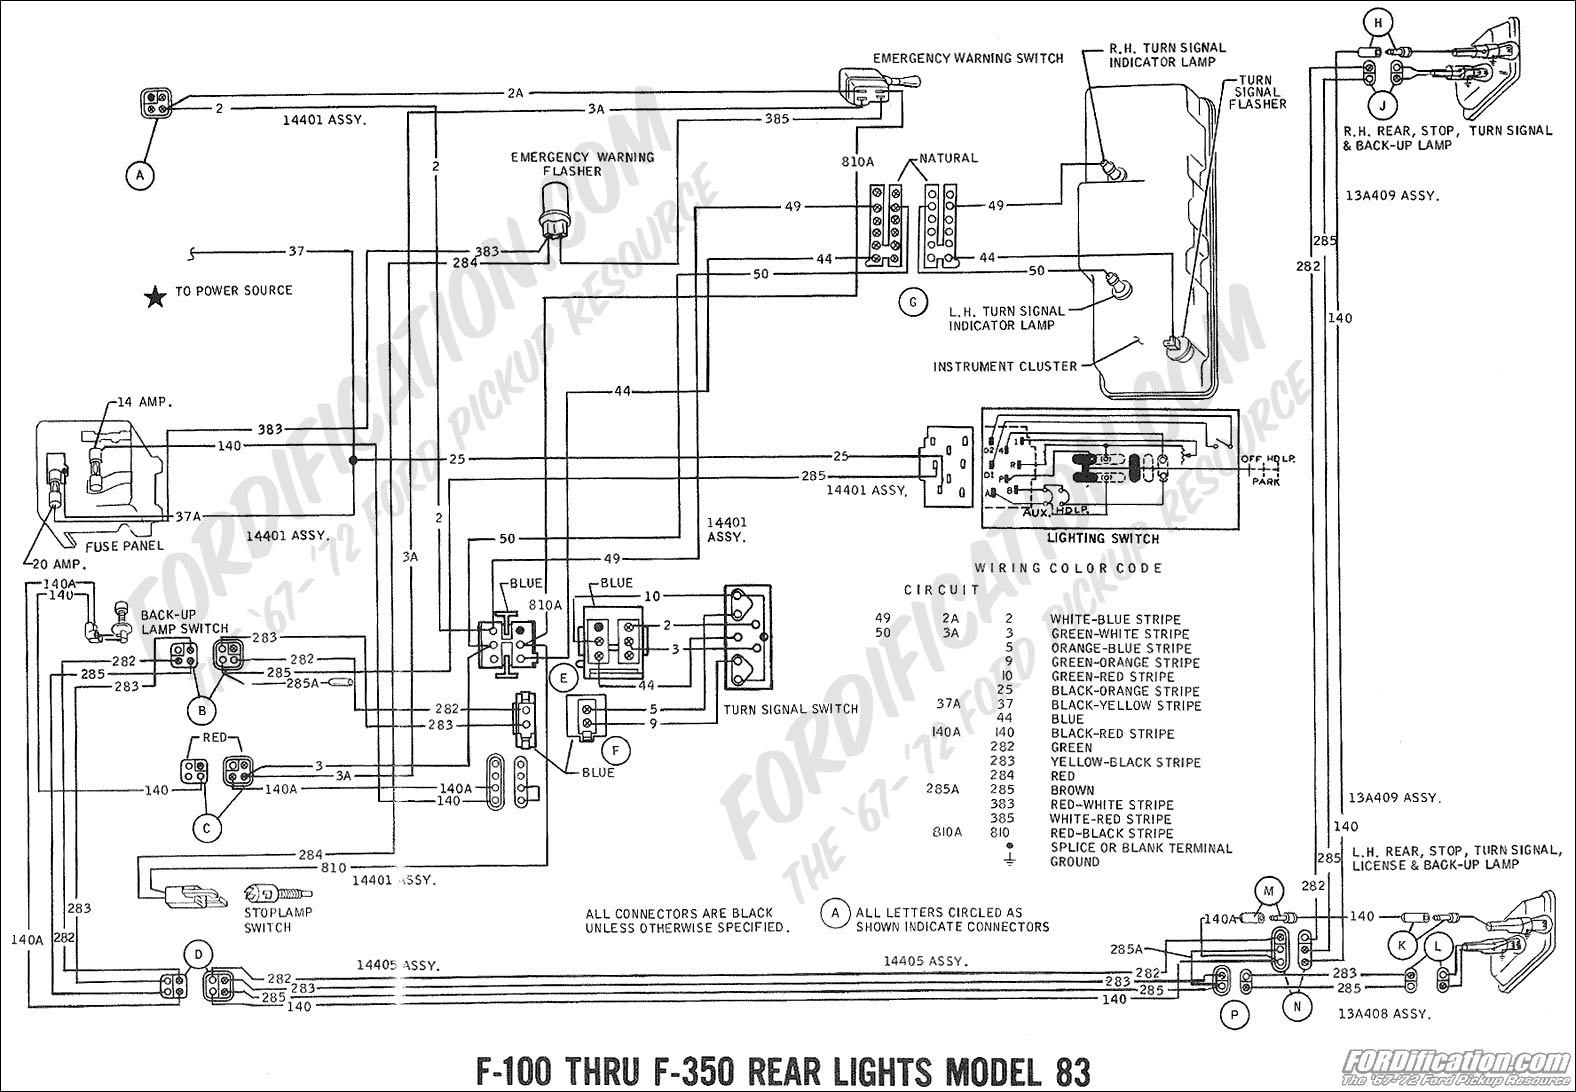 1960 Ford Truck Wiring Diagram Technical 59 F100 Wiring Problem The